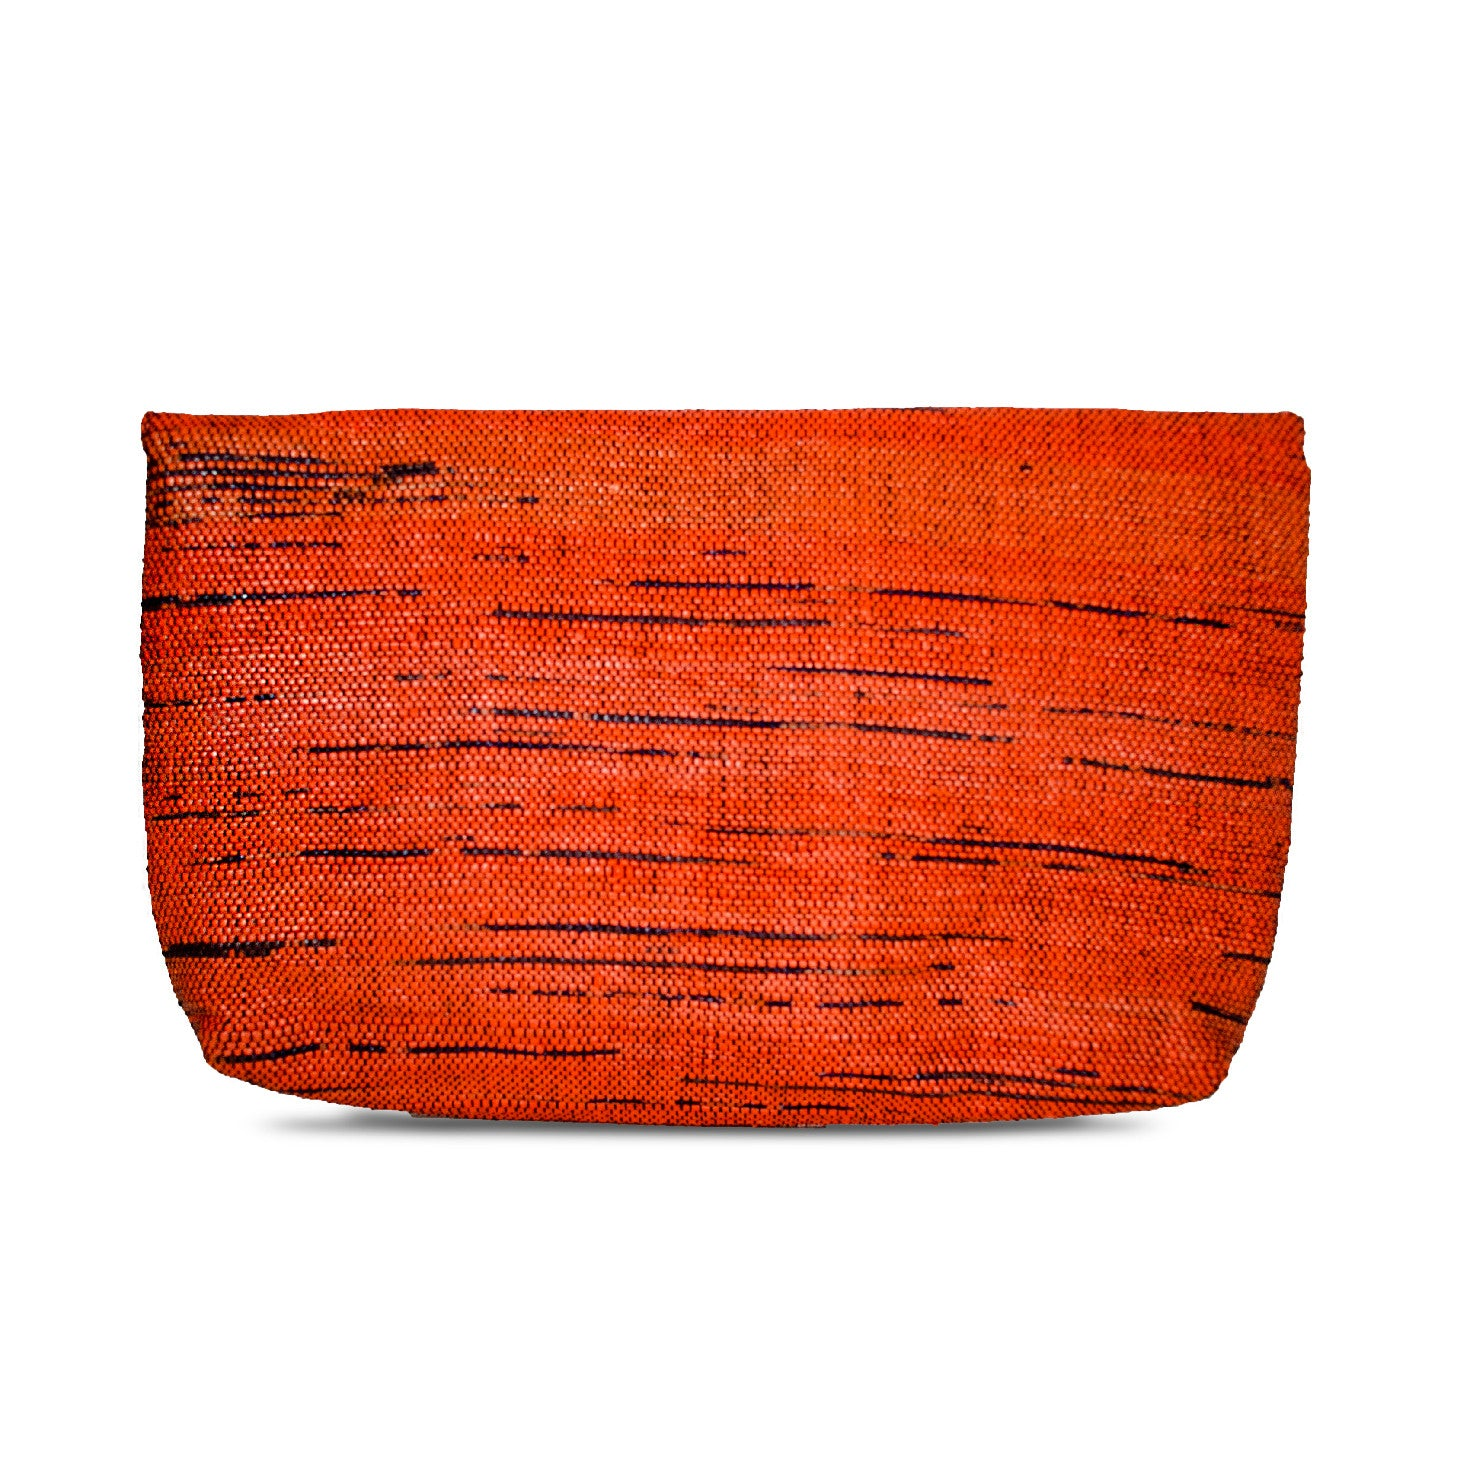 Clutch Black & Orange